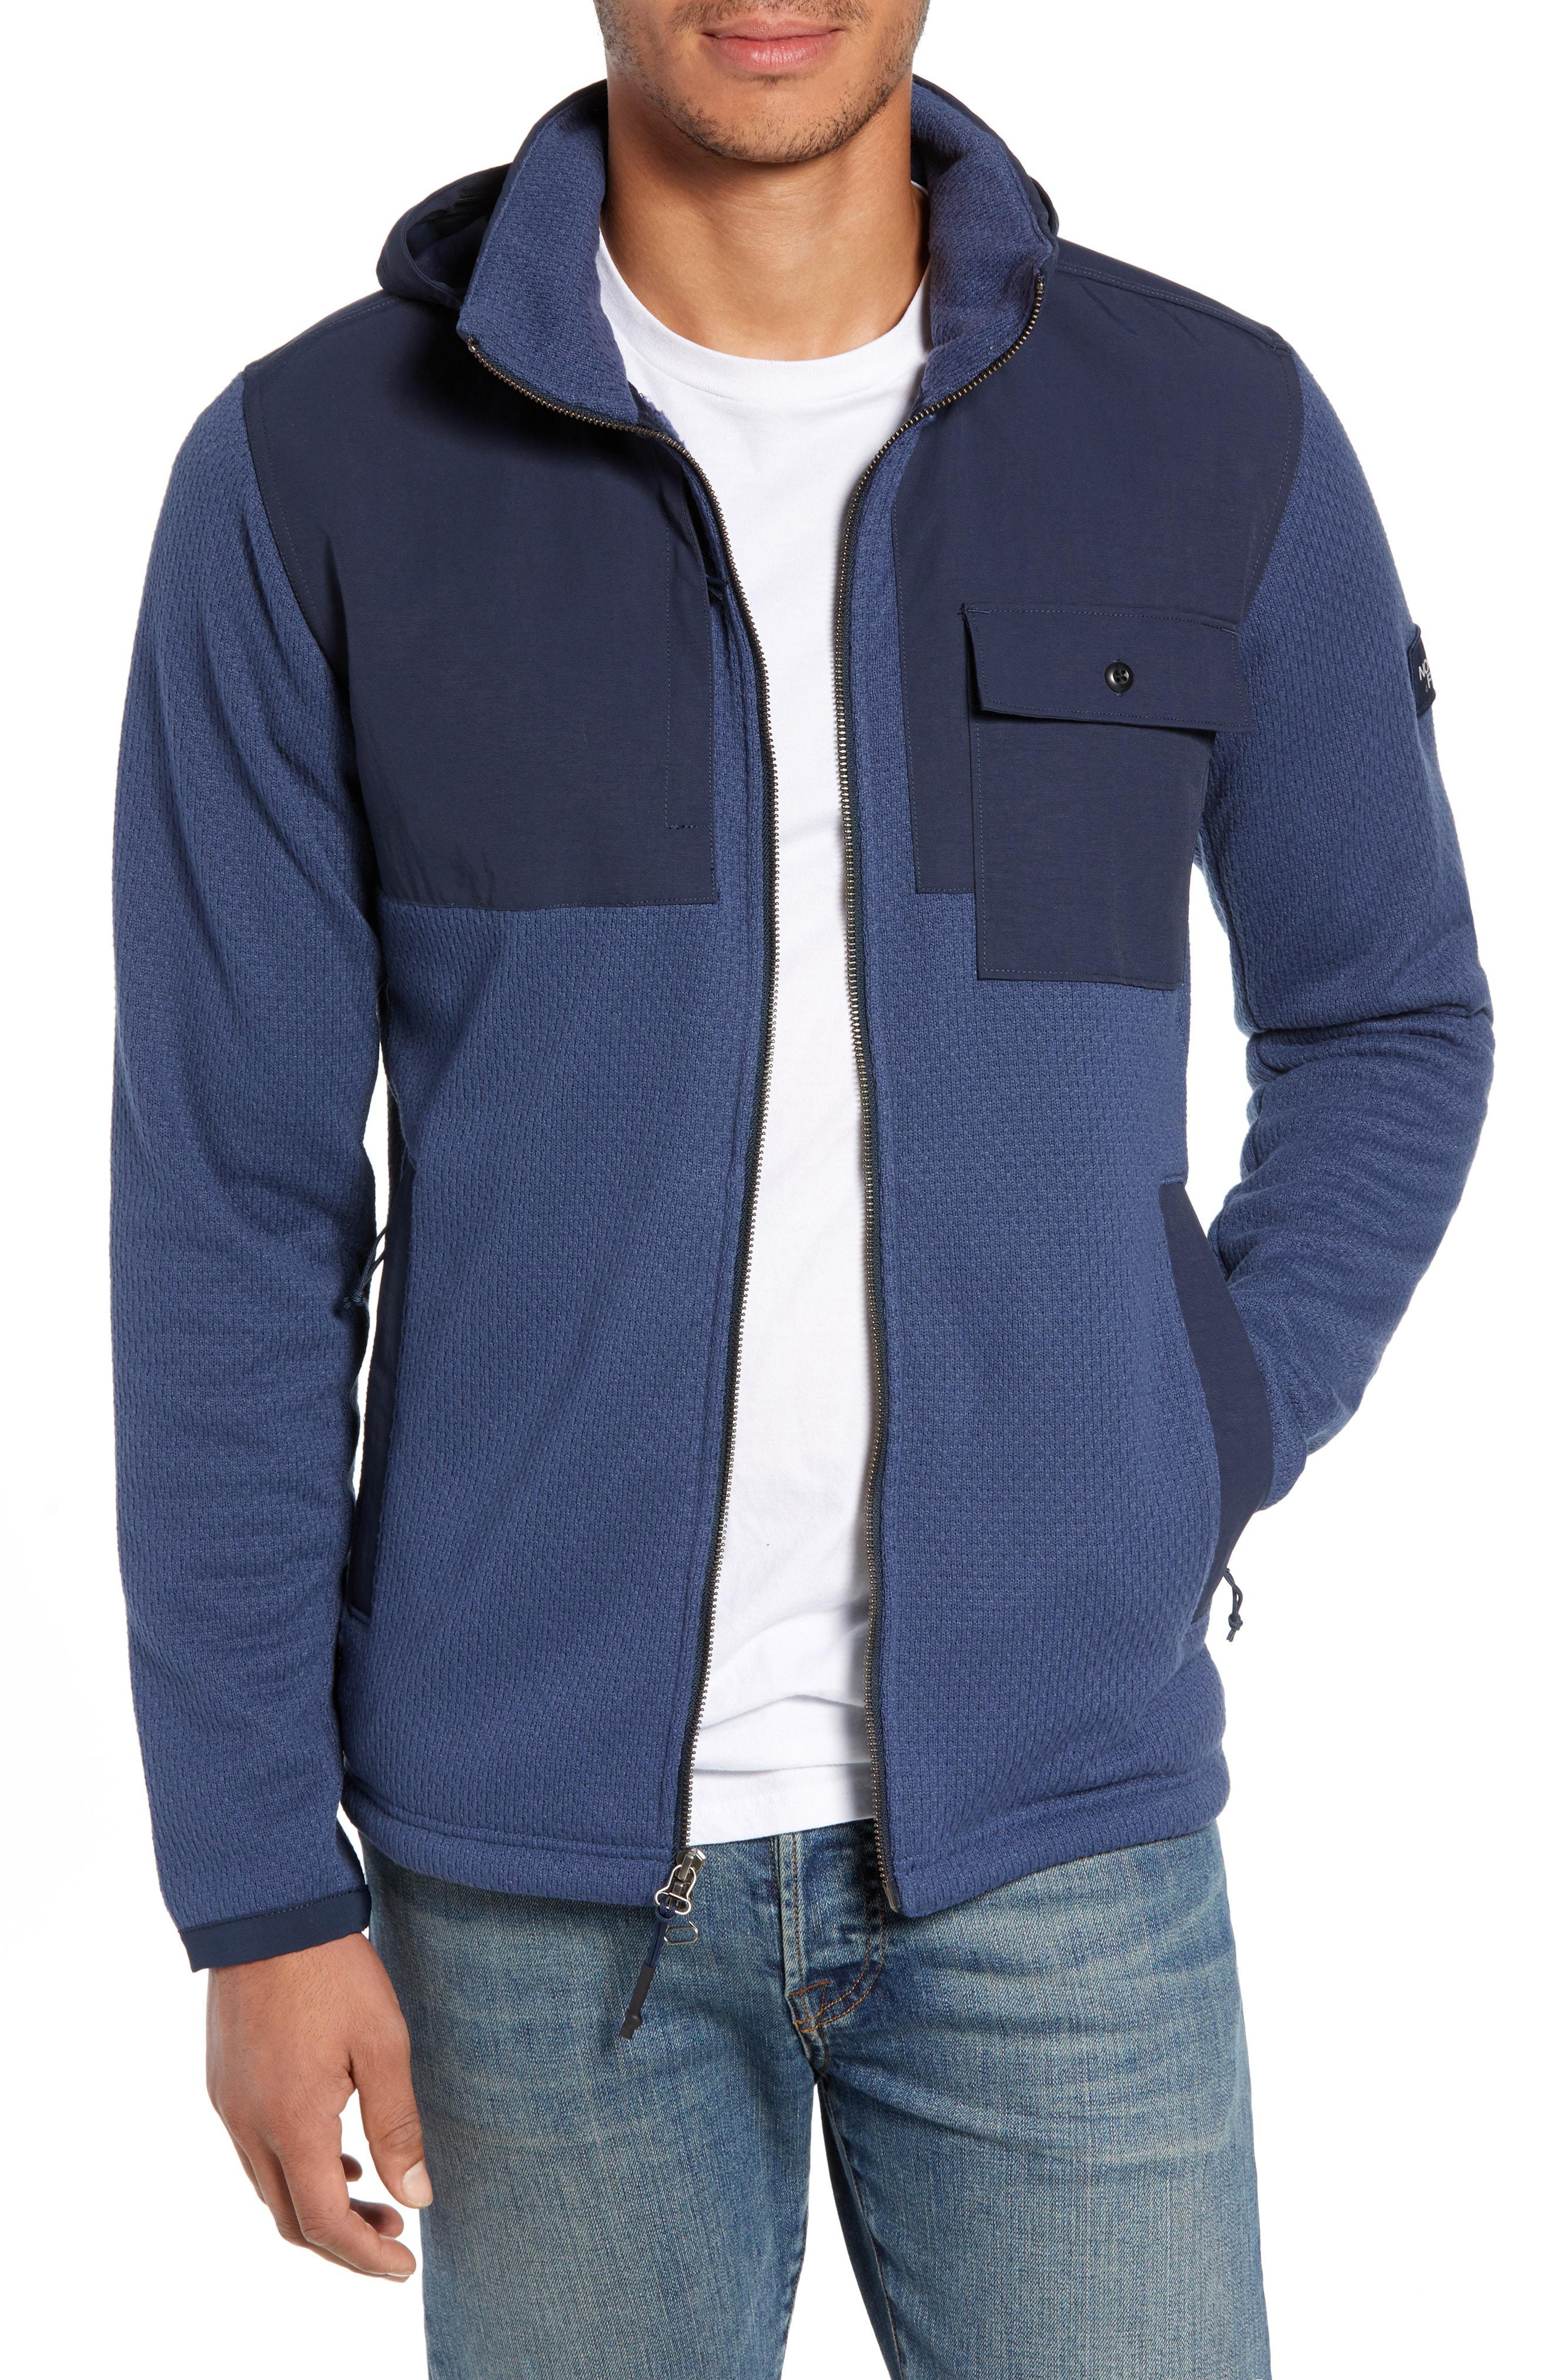 Lyst - The North Face Be-layed Back Jacket in Blue for Men - Save ... 0d202dc13